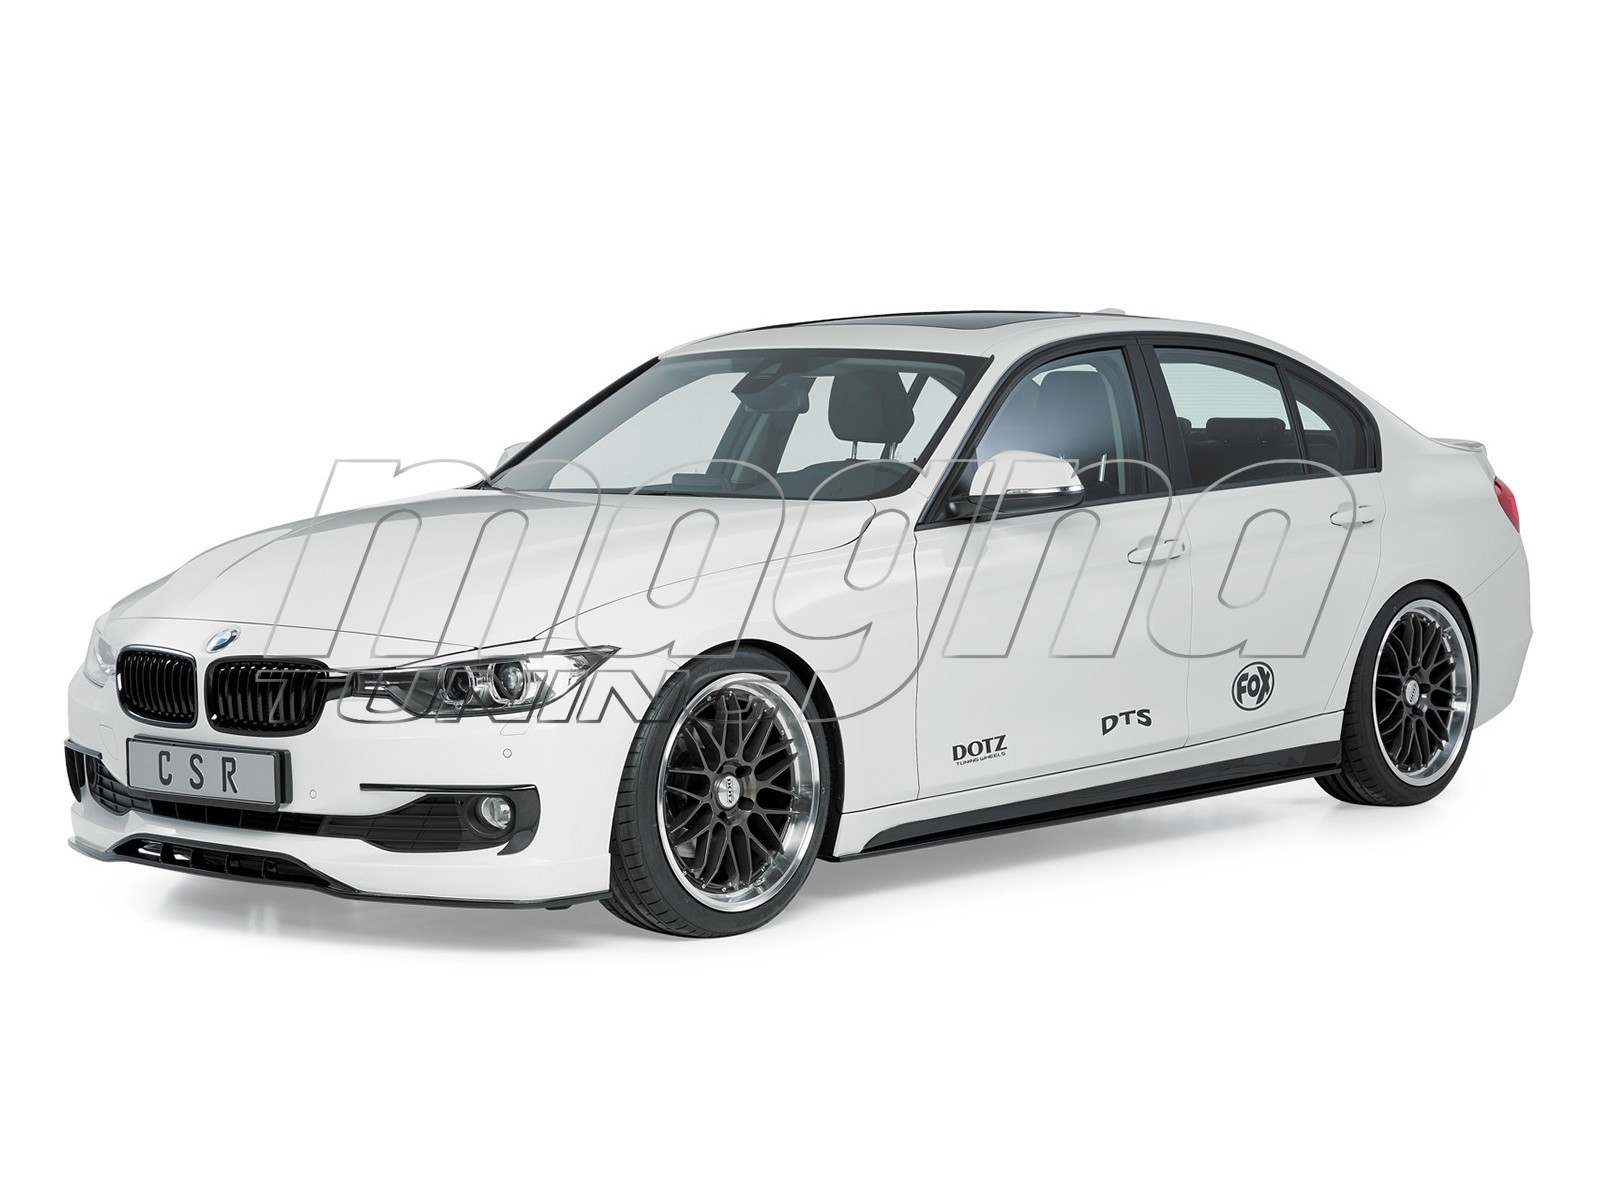 bmw f30 f31 cx body kit. Black Bedroom Furniture Sets. Home Design Ideas